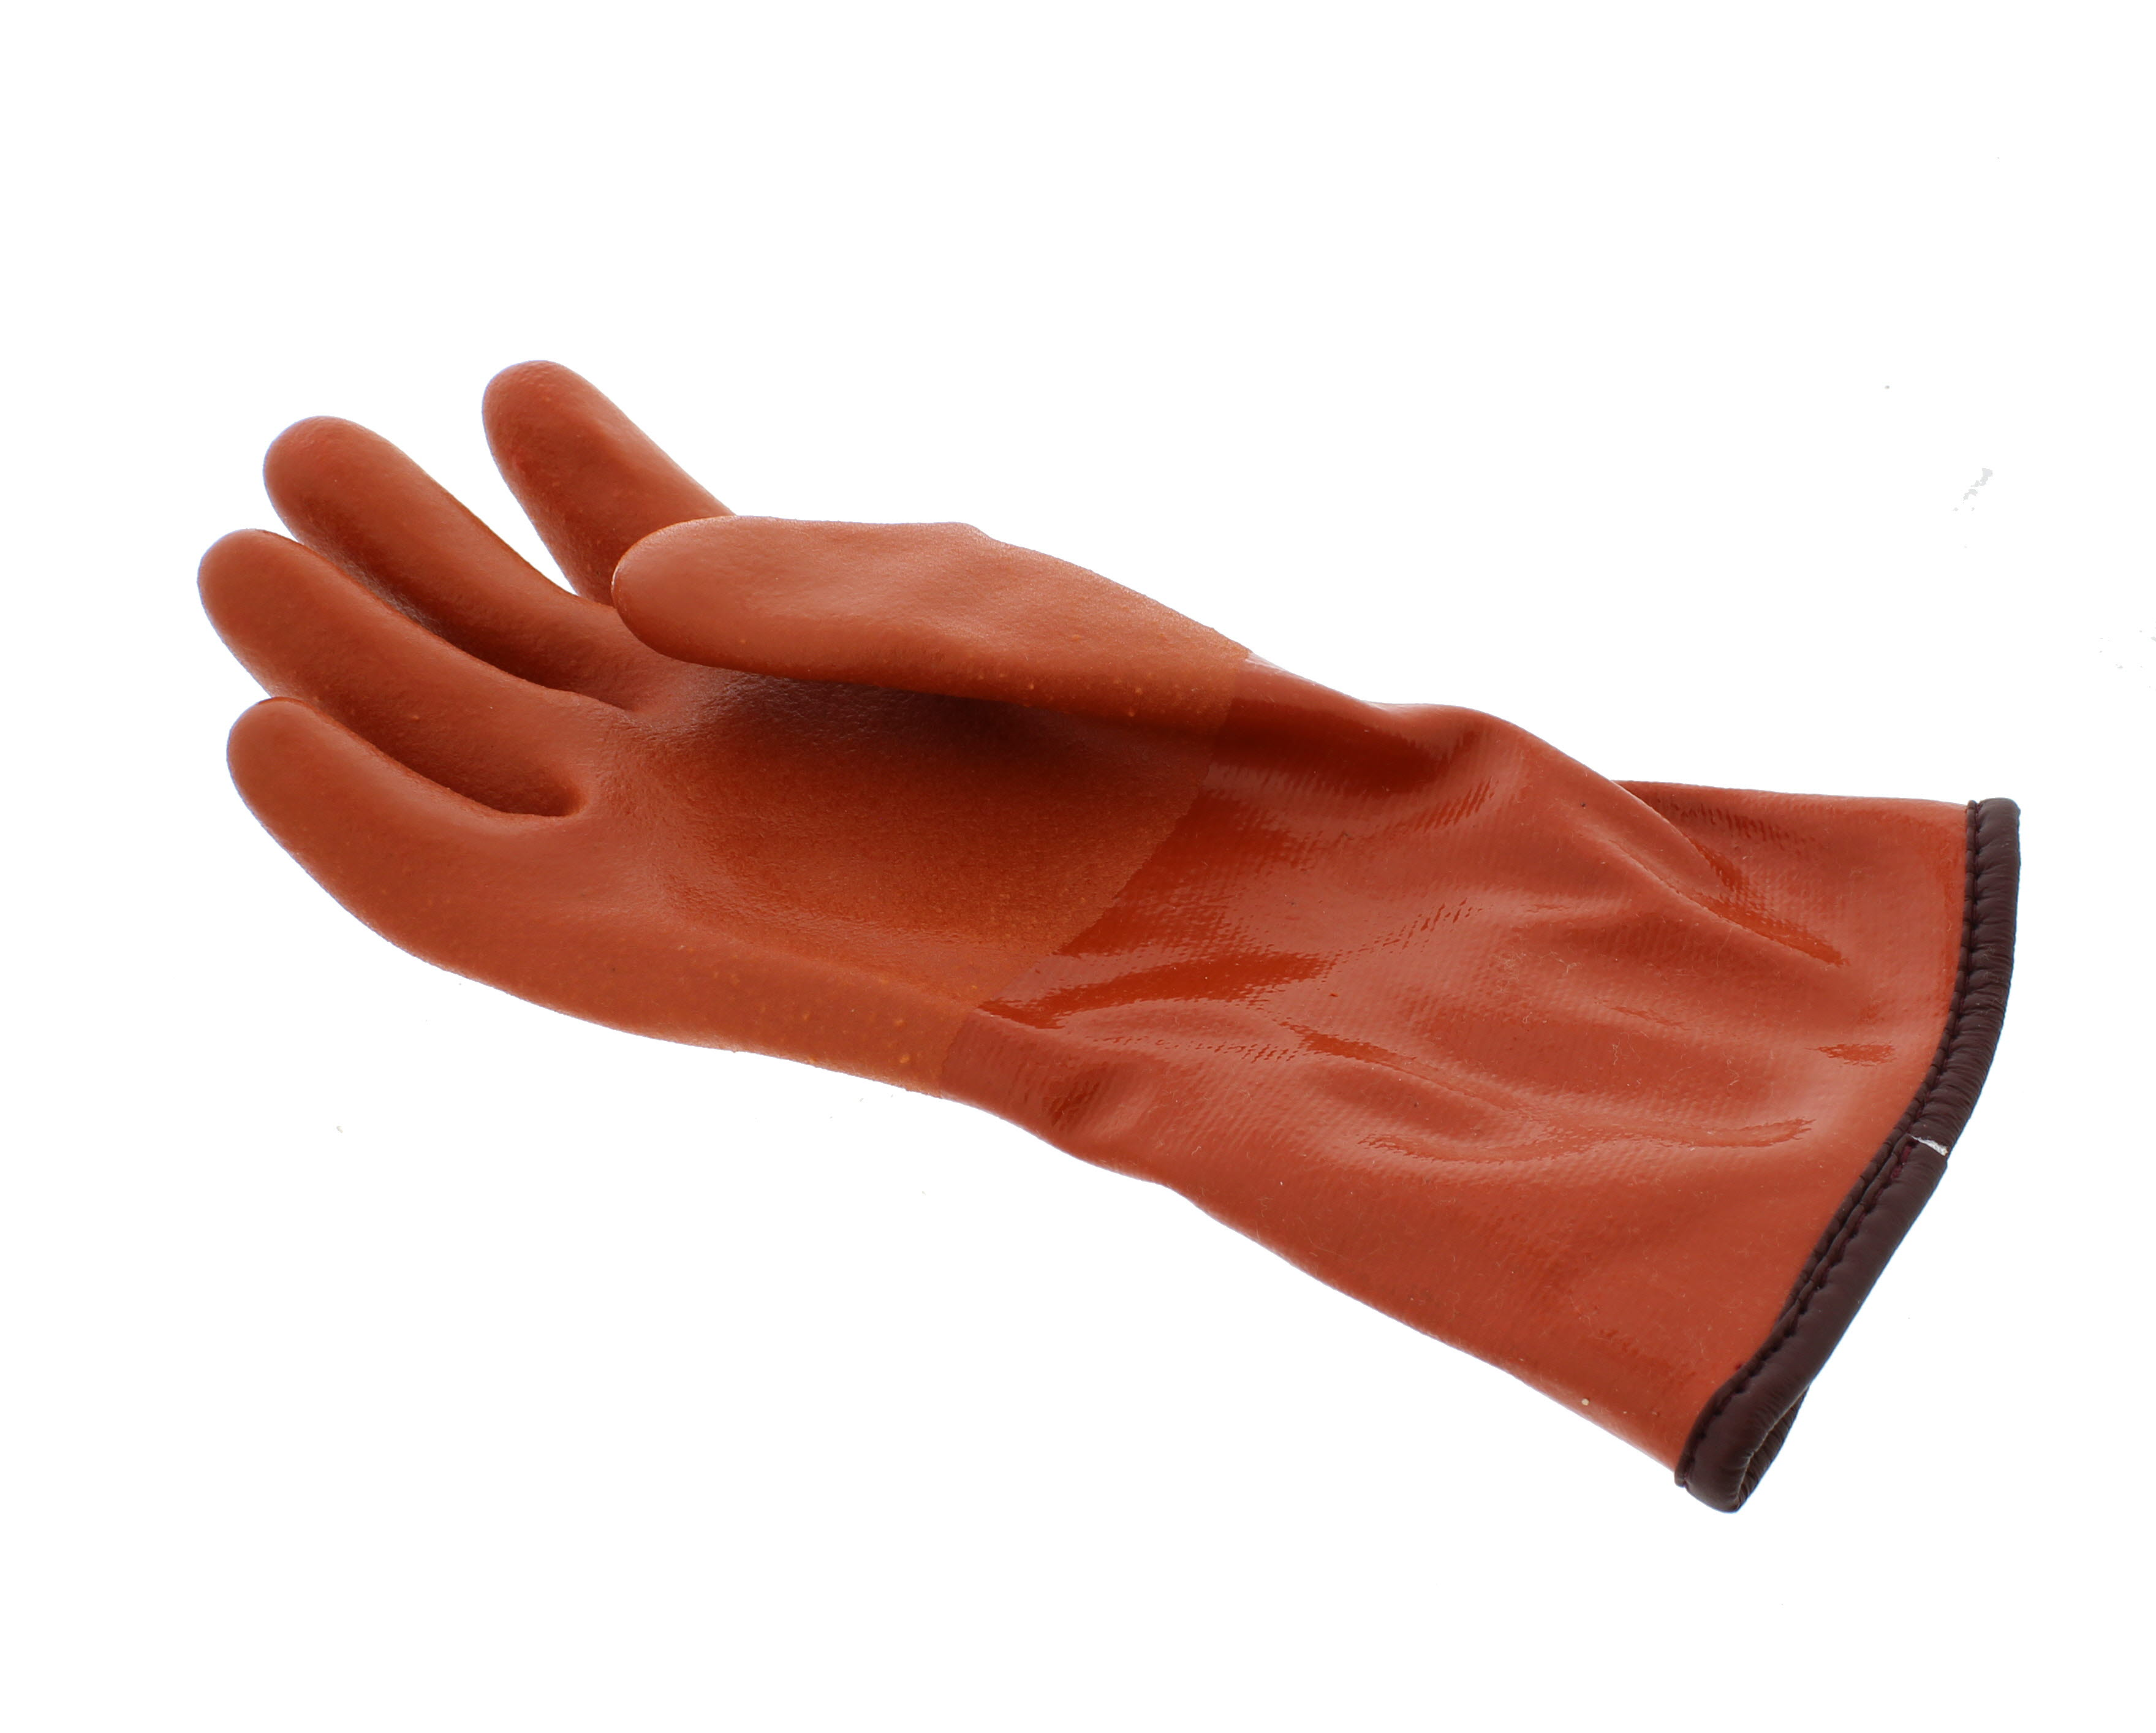 Showa Atlas 460 Vinylove Cold Resistant Insulated Gloves X-Large